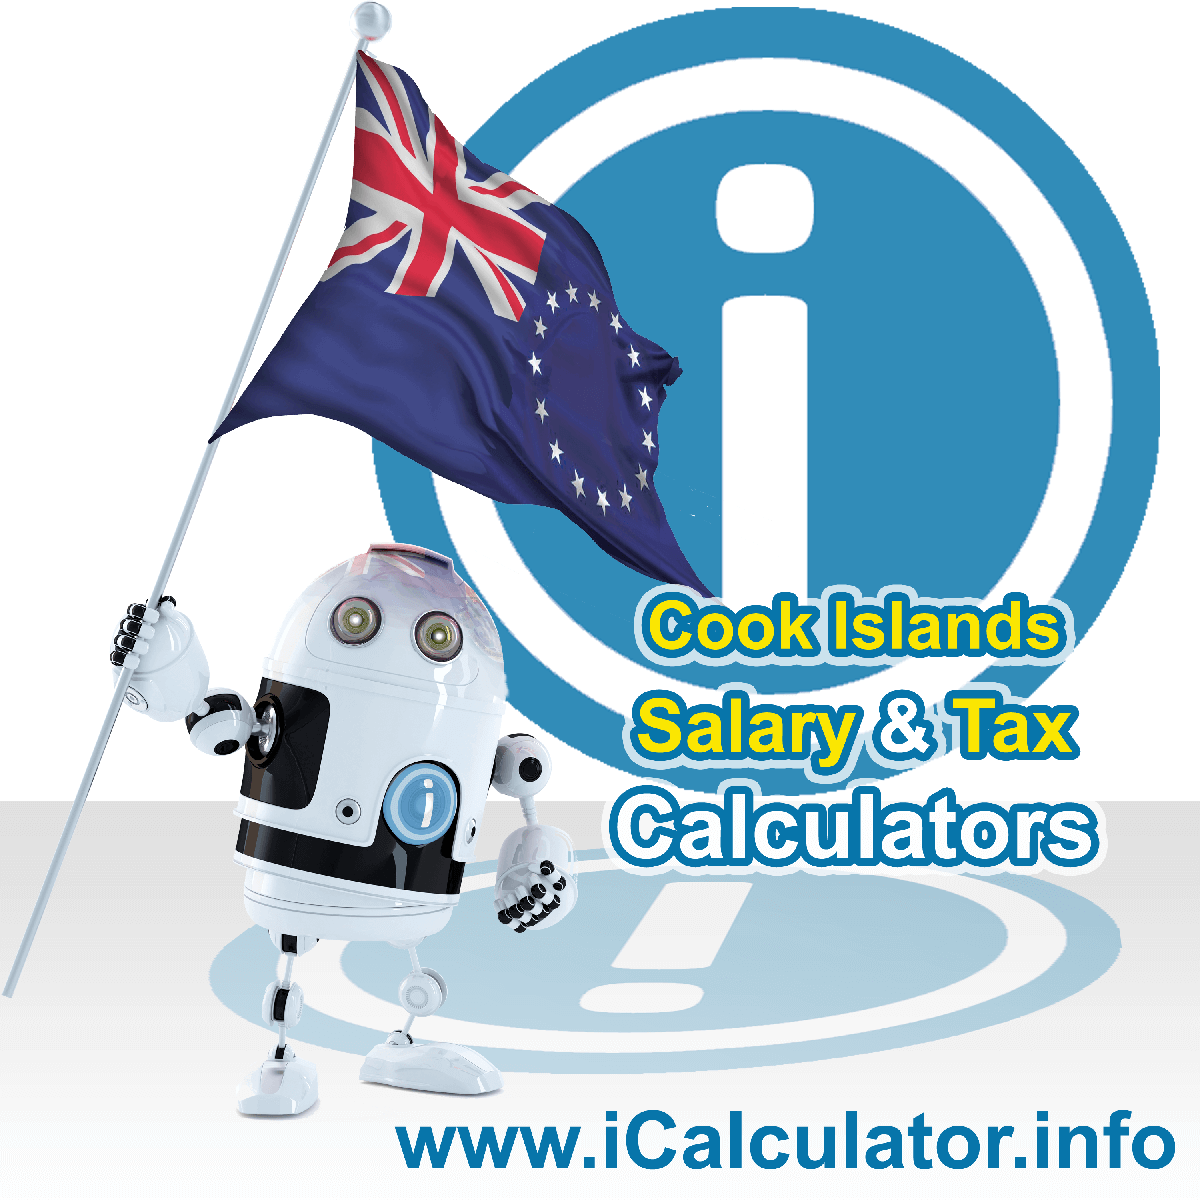 Cook Islands Wage Calculator. This image shows the Cook Islands flag and information relating to the tax formula for the Cook Islands Tax Calculator